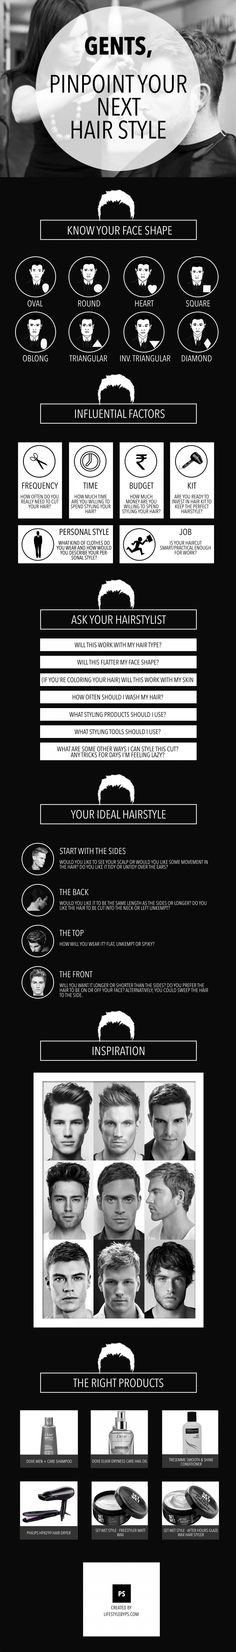 Great infographic for selecting the ideal hairstyle based on face shape.  #men #hairstyle